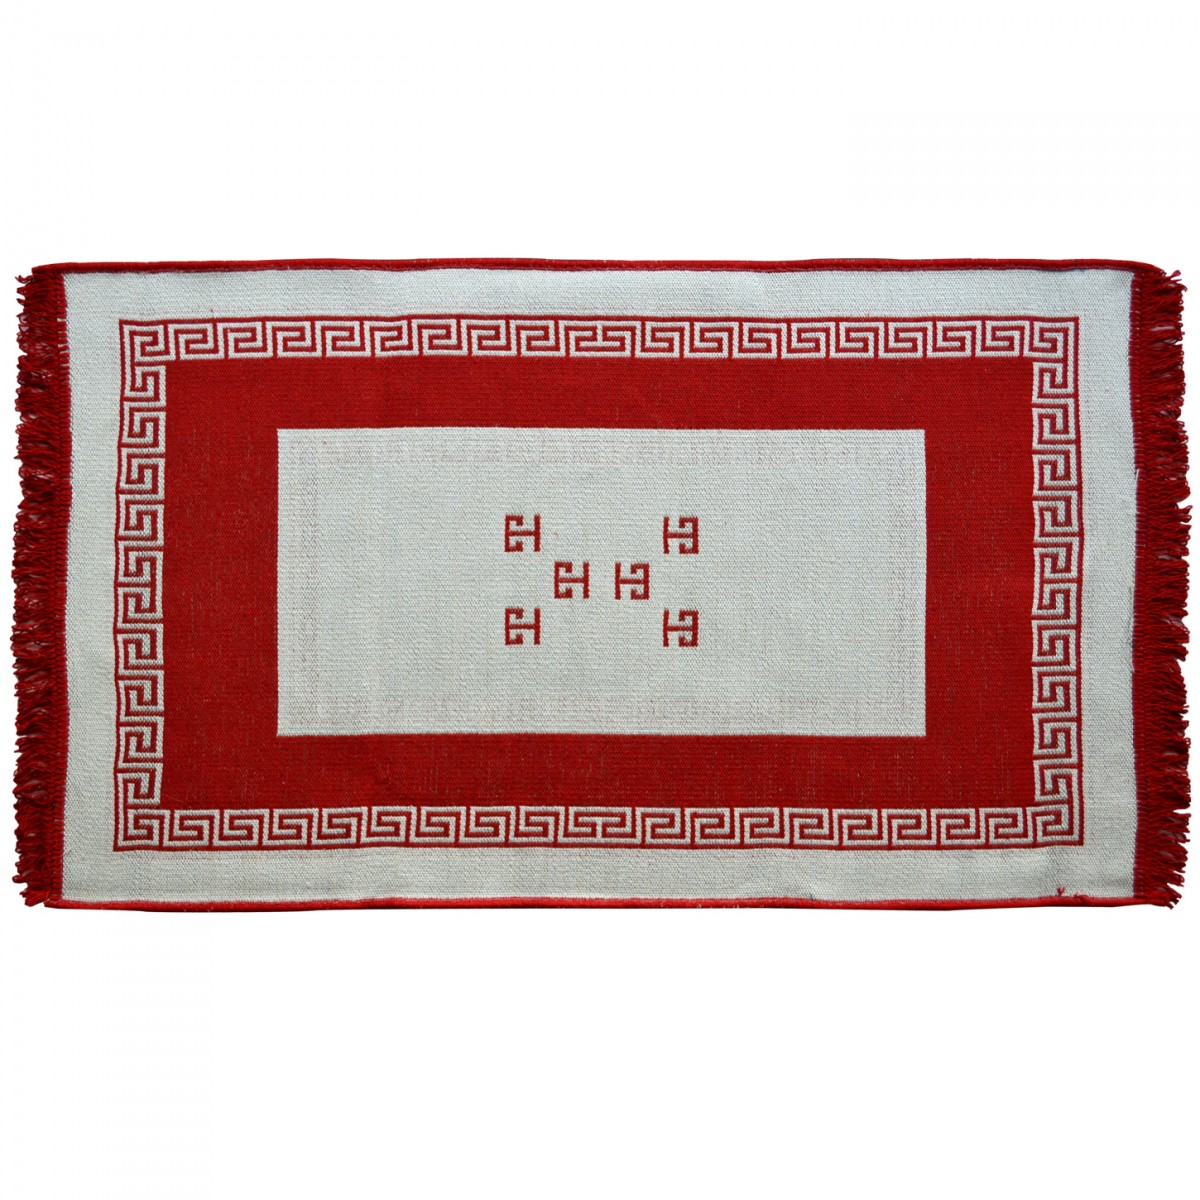 Meandros_Greek_Key_Two-Sided_Rug-1